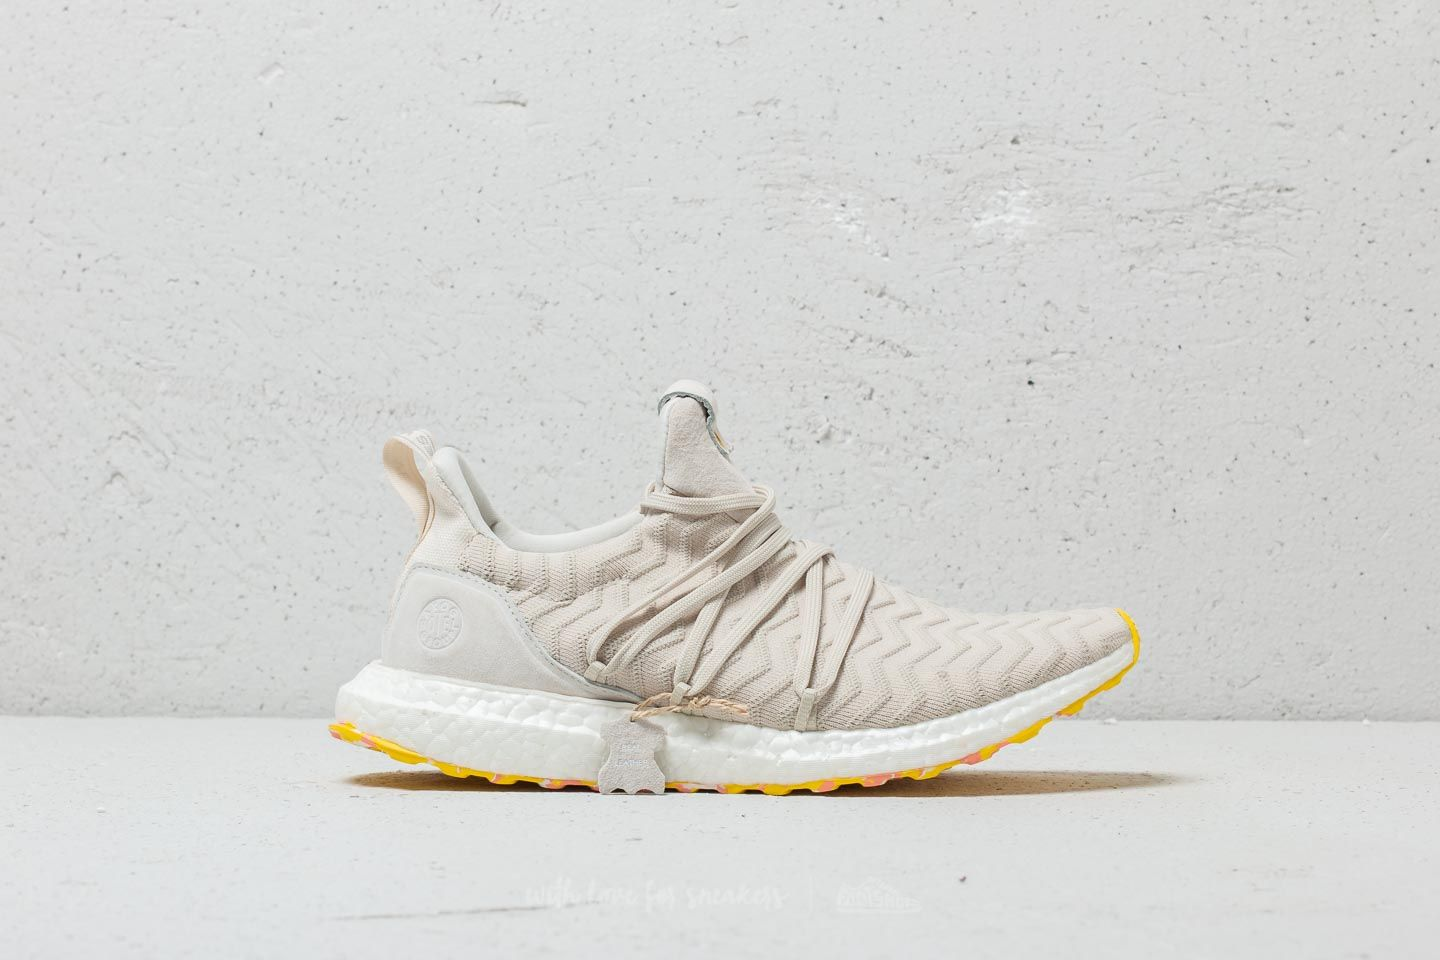 quality design 531e3 a4964 adidas Consortium x A Kind of Guise UltraBOOST Chalk White ...